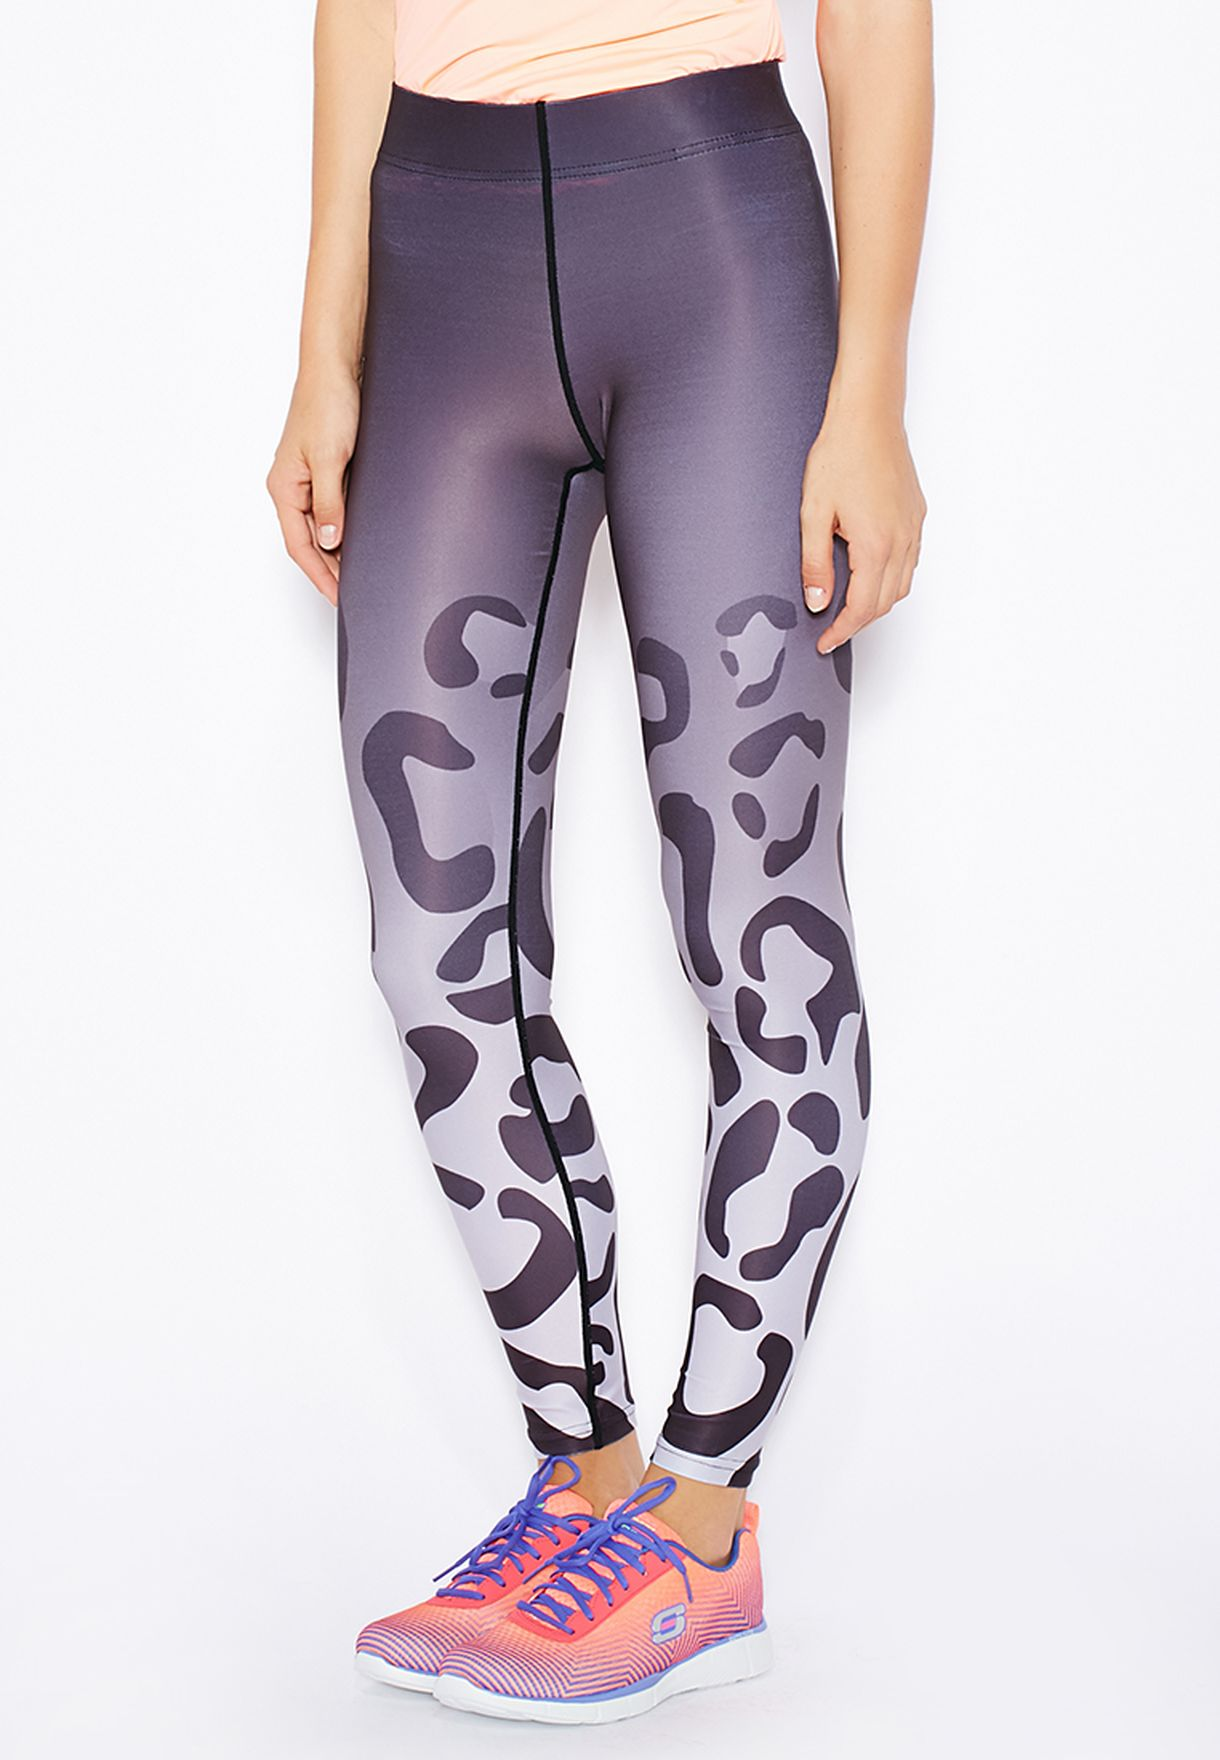 1caf7bf129eefb Shop Only play multicolor Leo Printed Training Tights for Women in ...